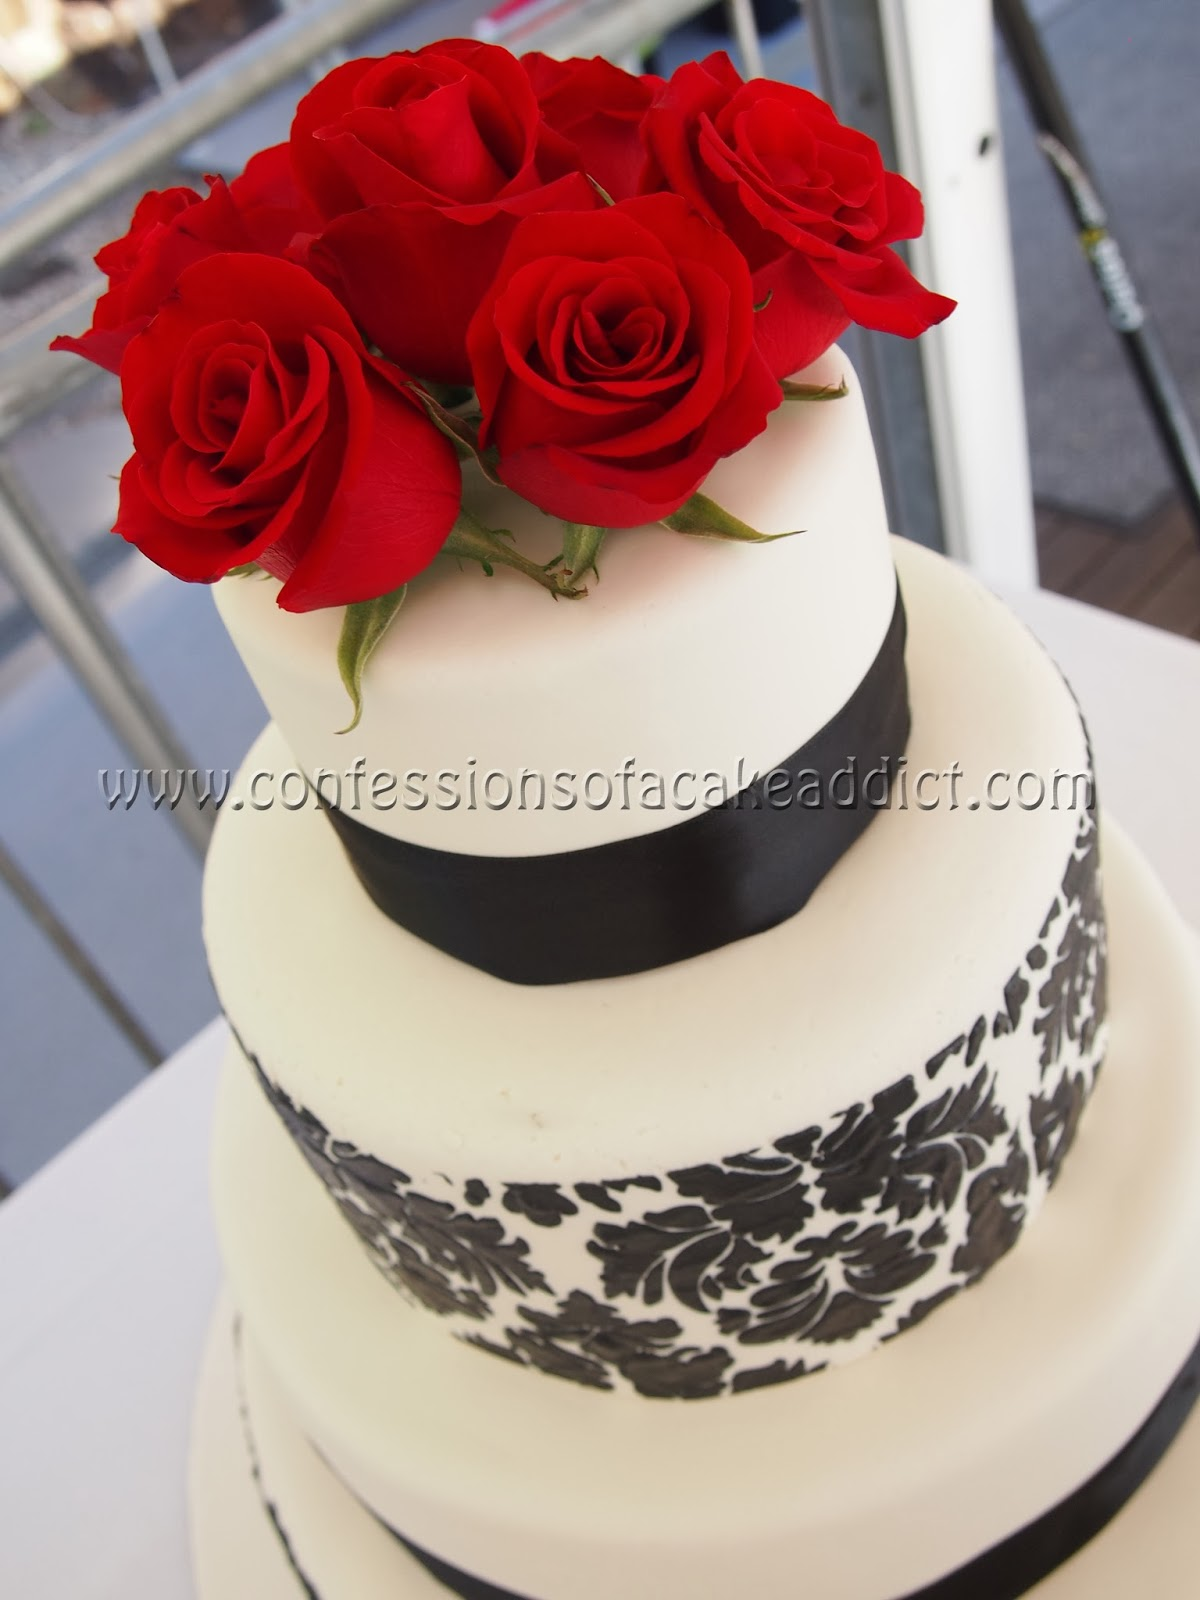 confessions of a cake addict Black and White Damask